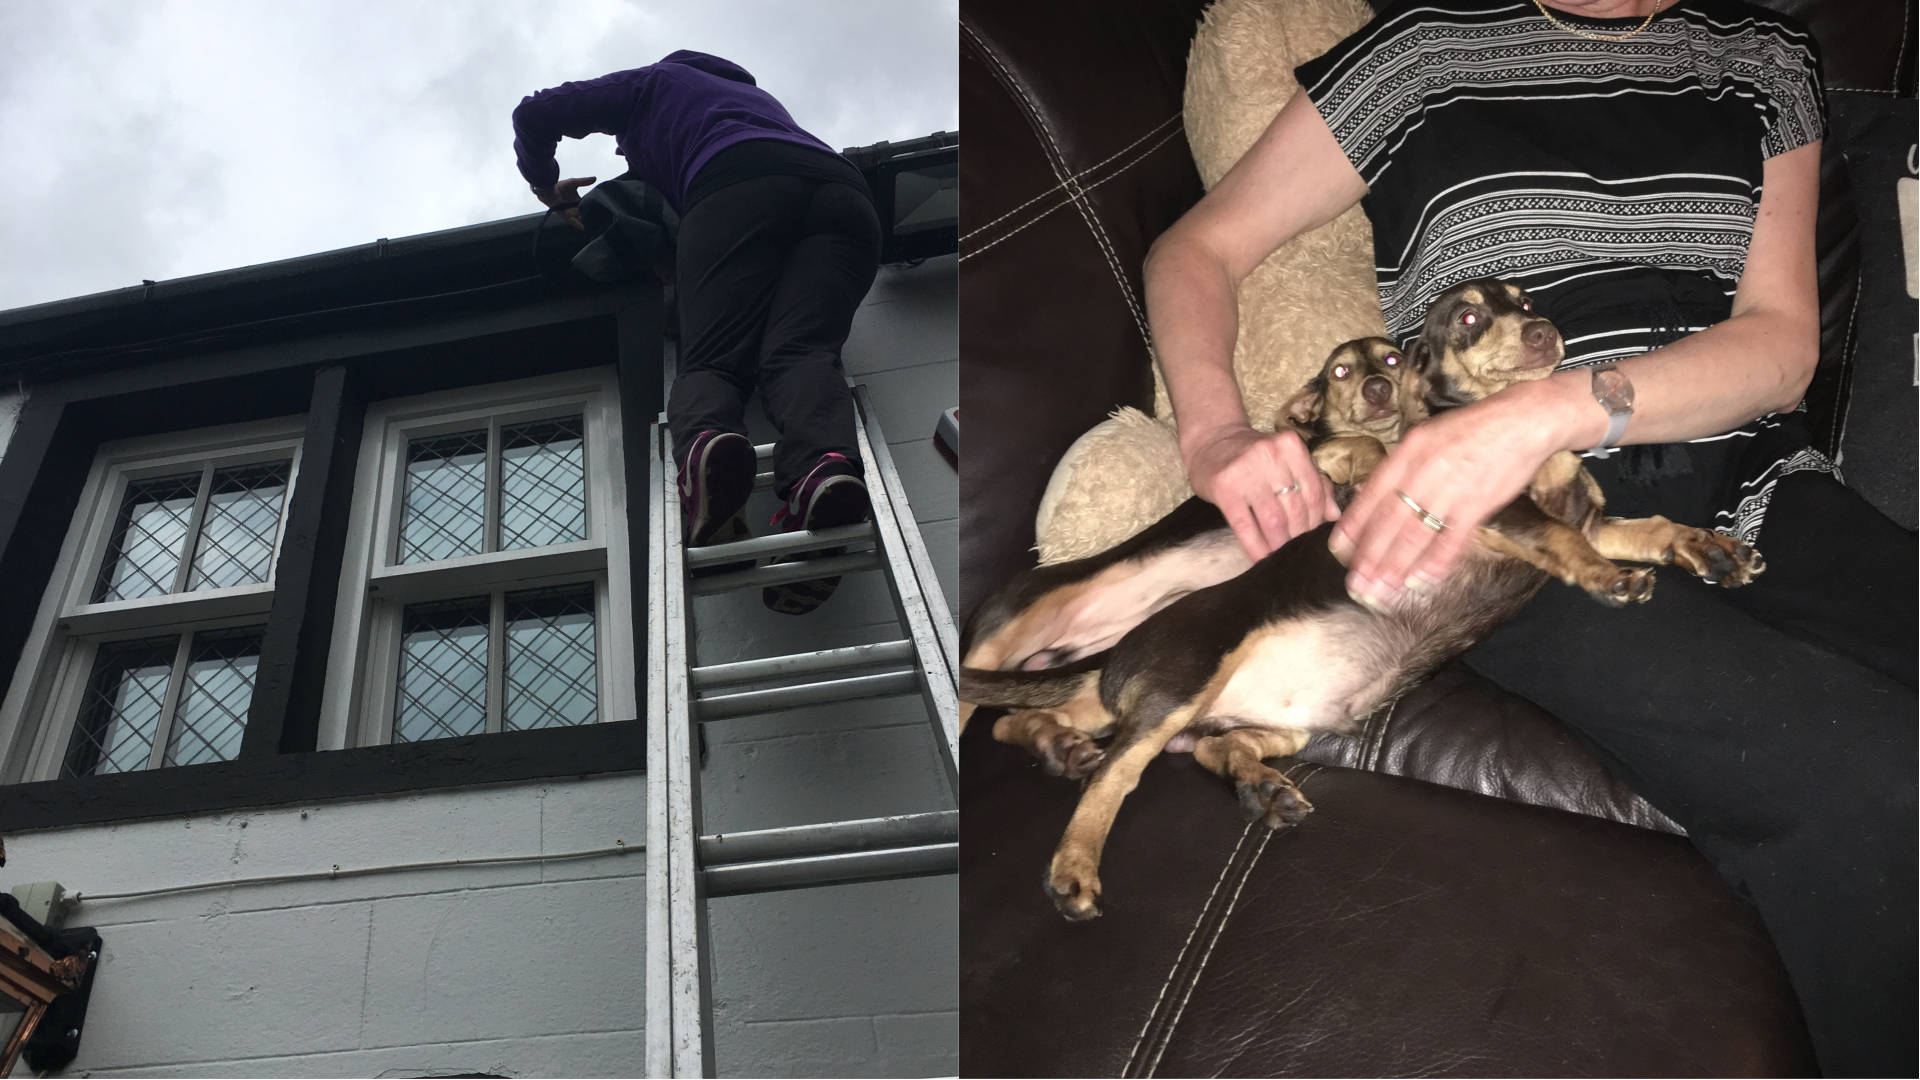 Two Dachshunds who were rescued from on top of a roof